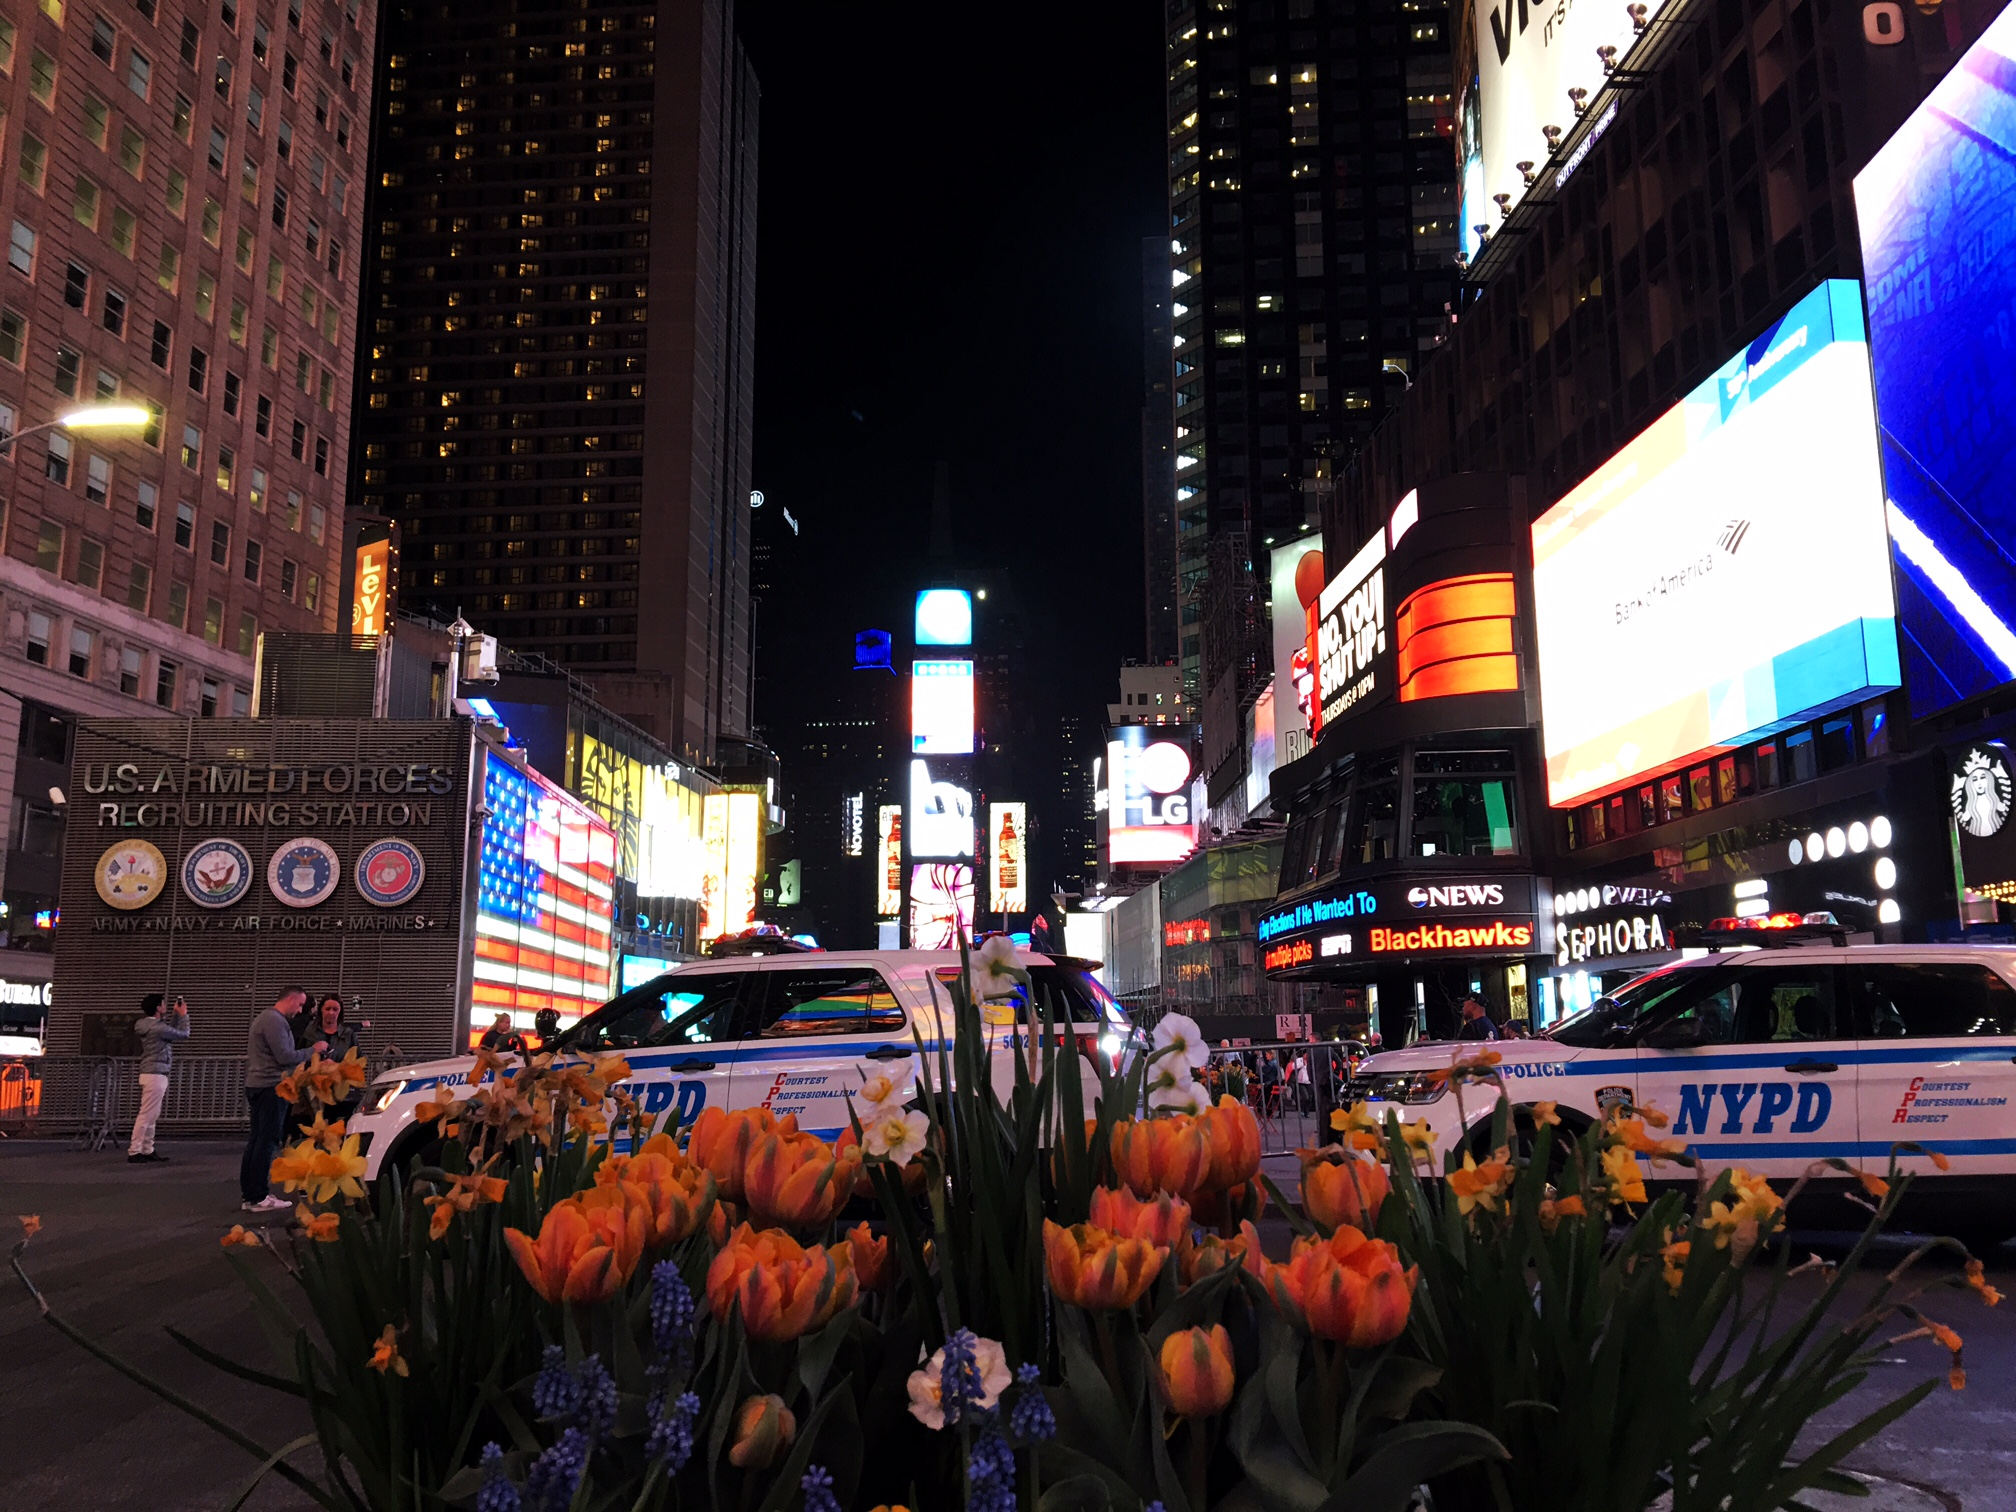 Had to make a stop in New York so sought out some nature -- tulips in Times Square.